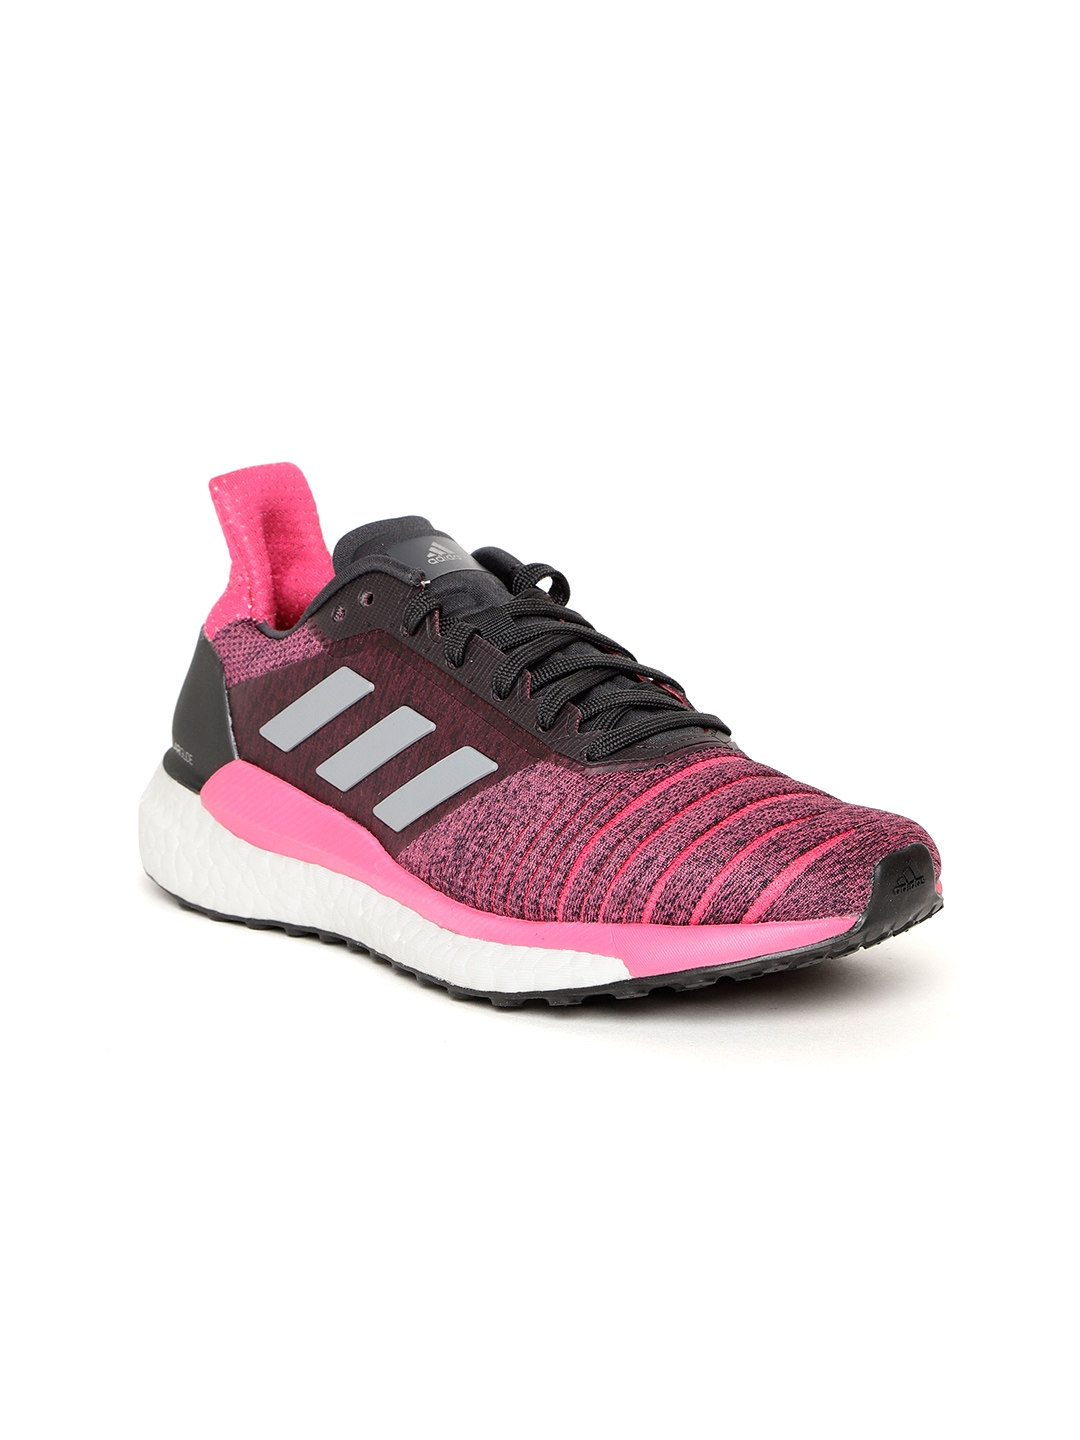 finest selection b707c 08073 ADIDAS Women Pink   Black Solar Glide Running Shoes